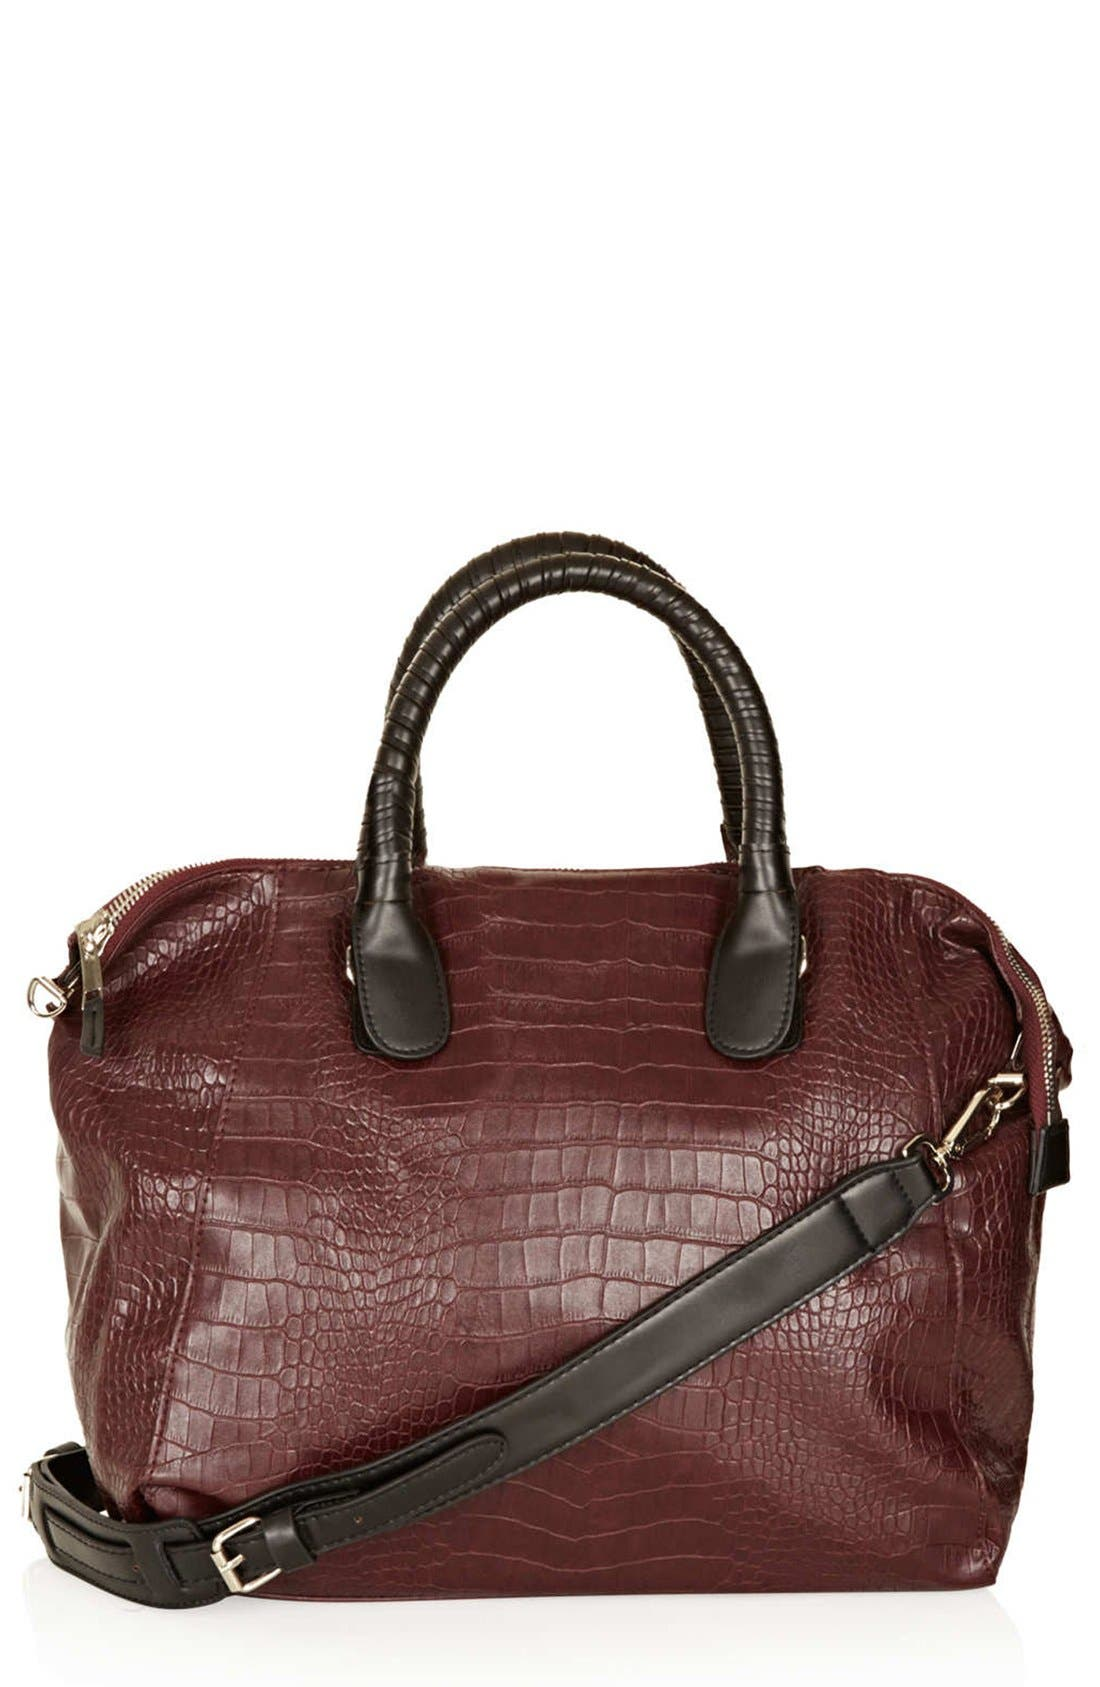 Alternate Image 1 Selected - Topshop Croc Embossed Satchel